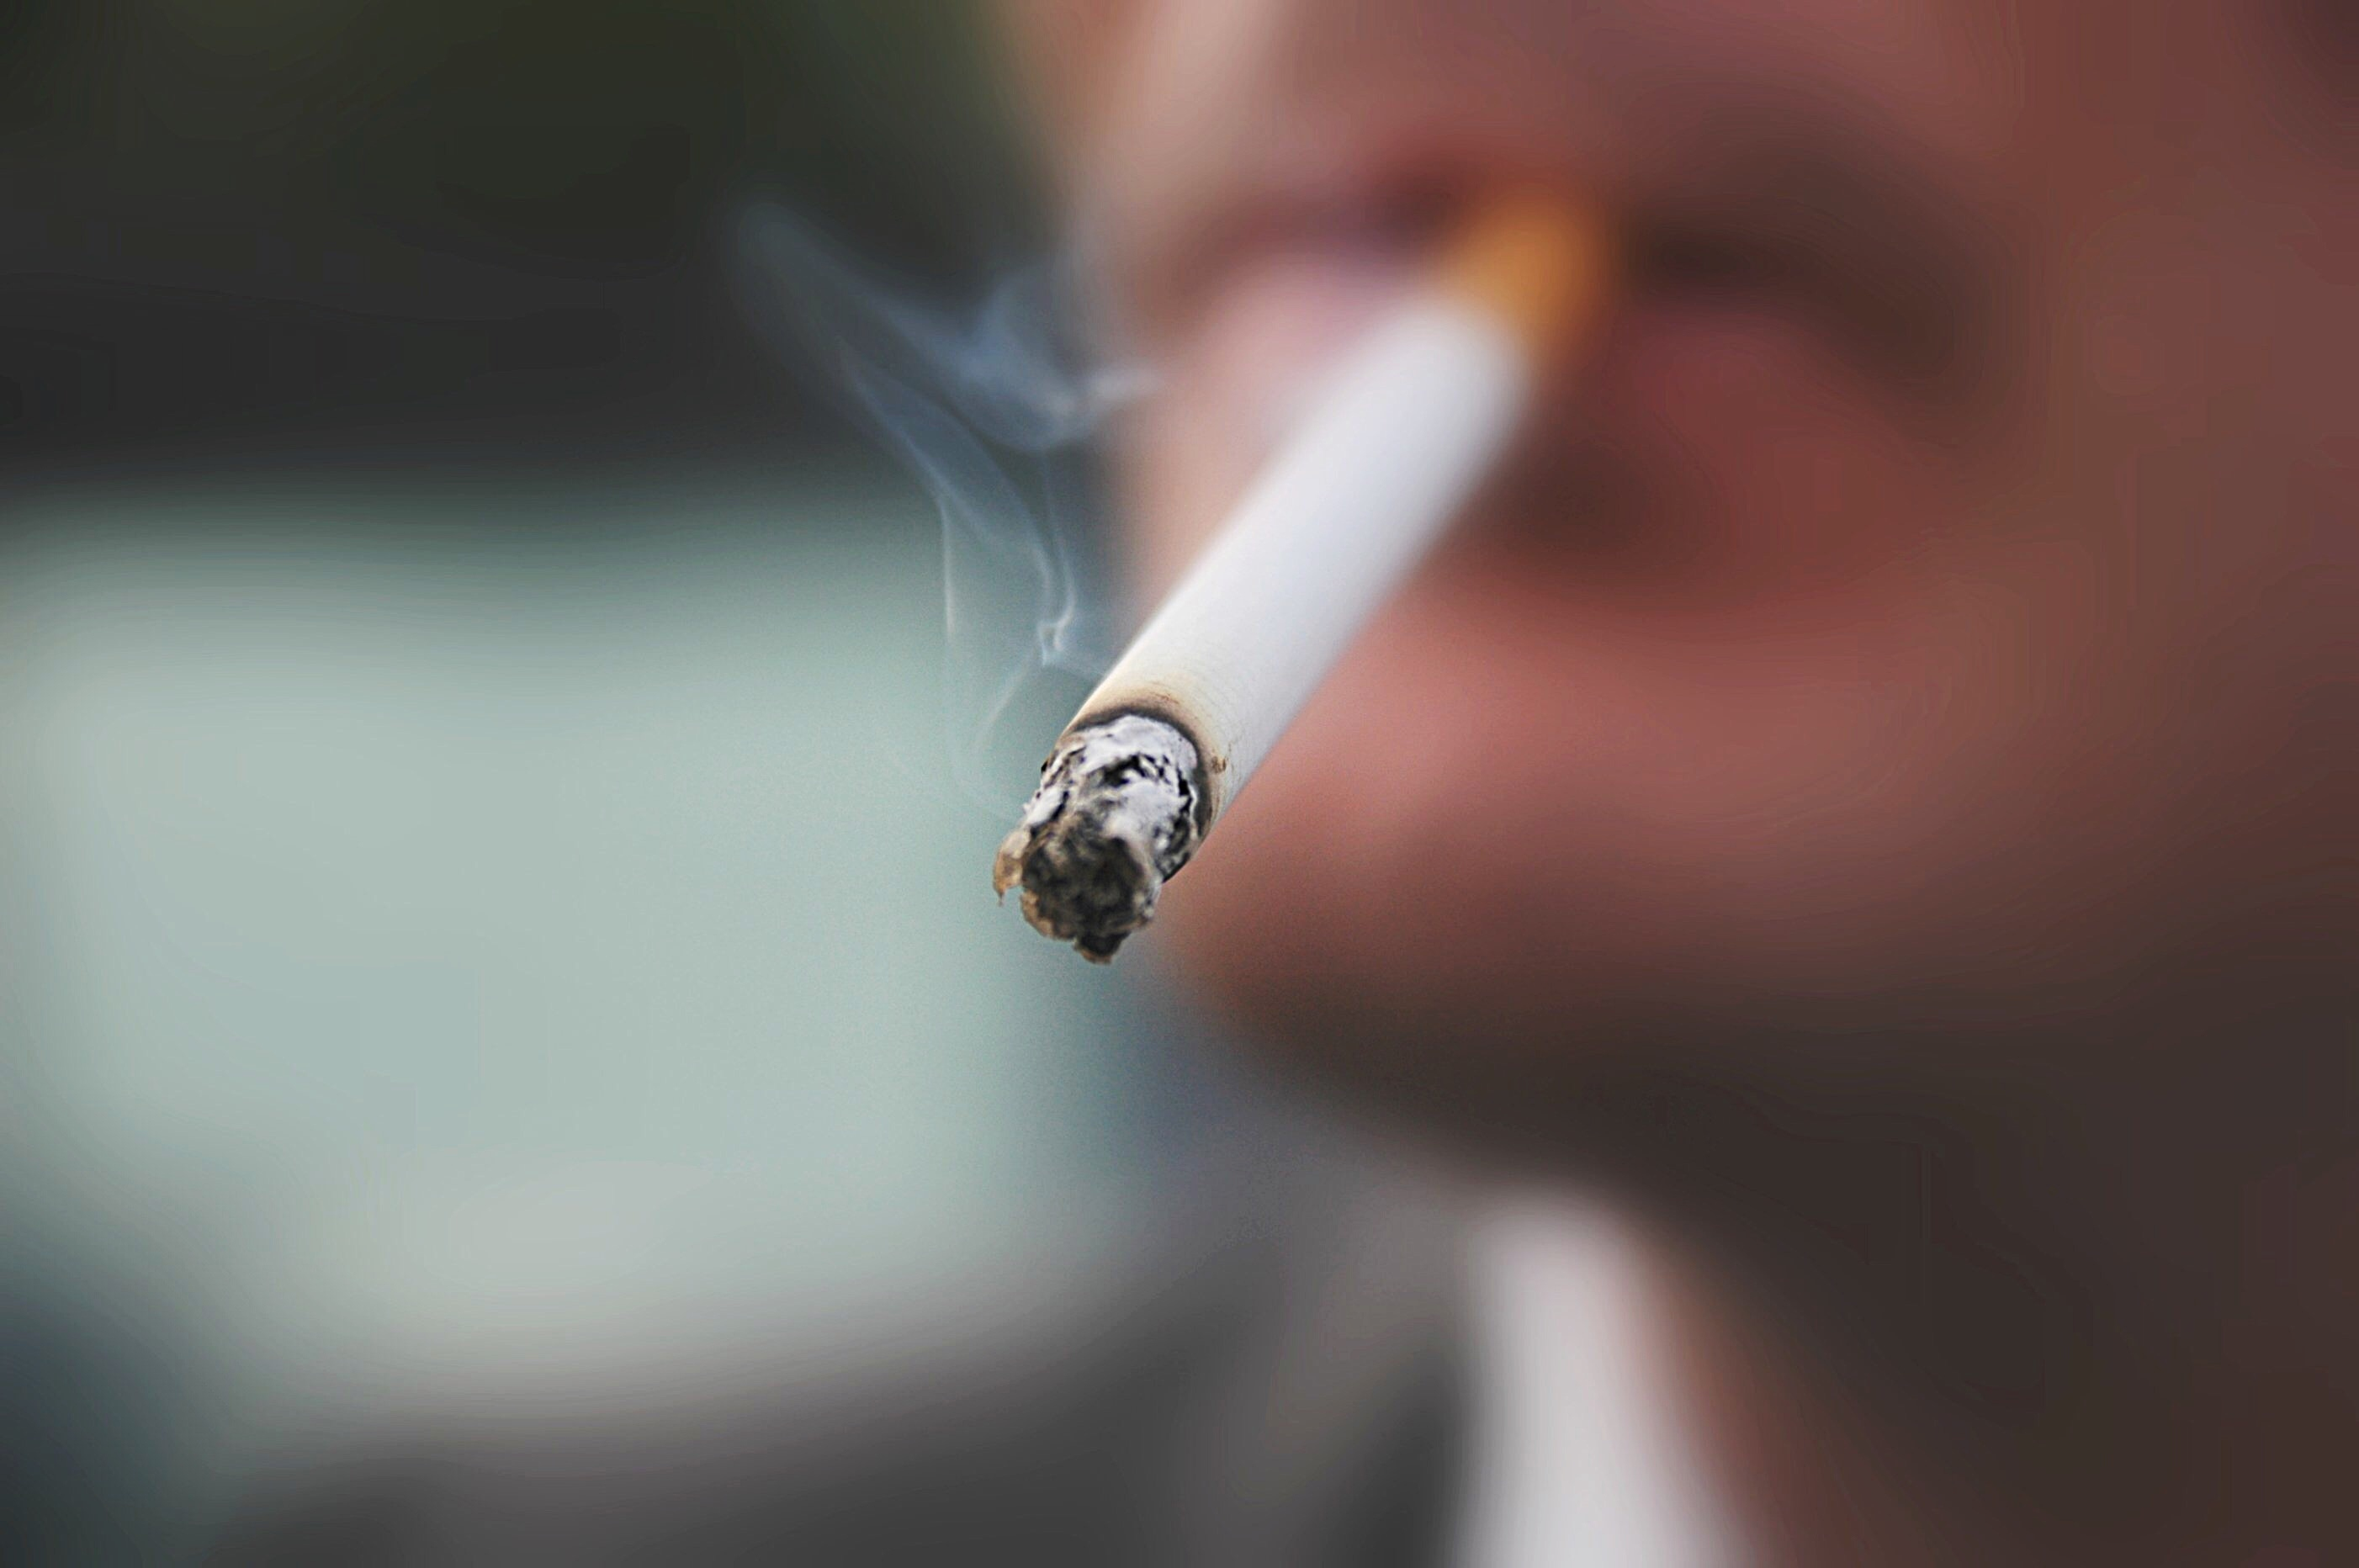 They make inhaling more comfortable and are often marketed to younger, newer smokers.